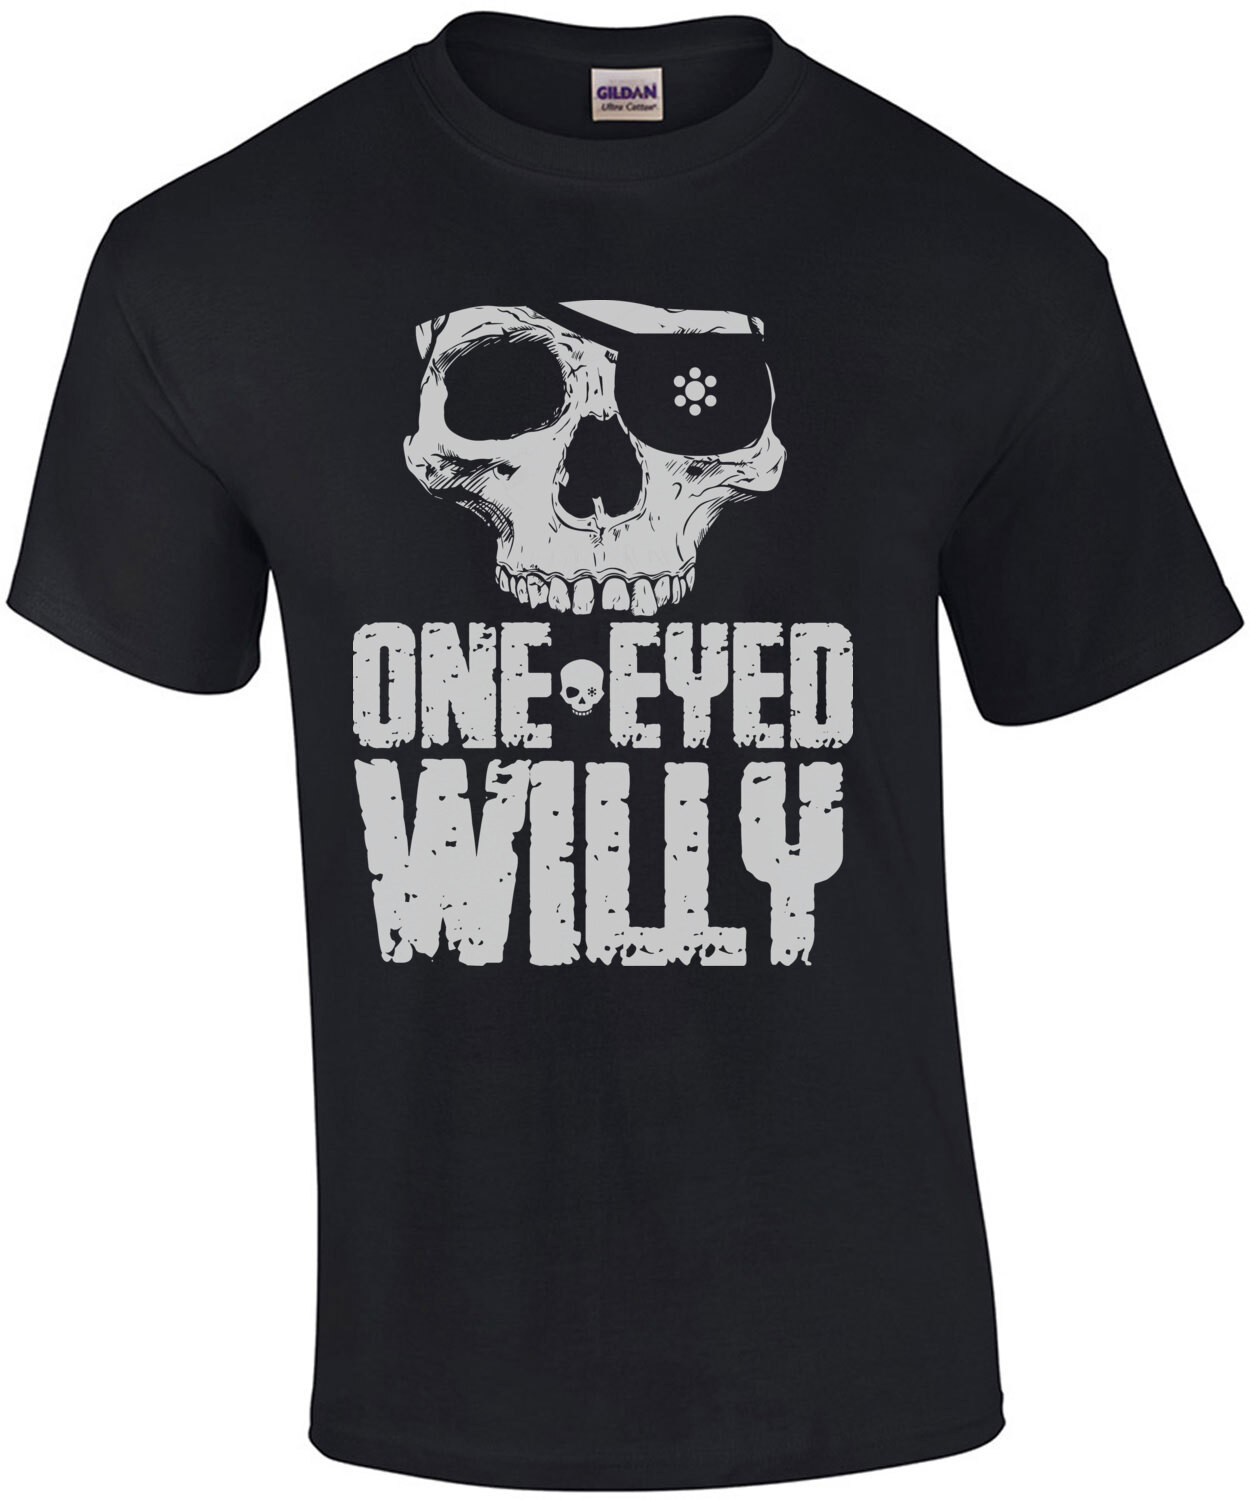 One Eyed Willy - The Goonies - 80's T-Shirt